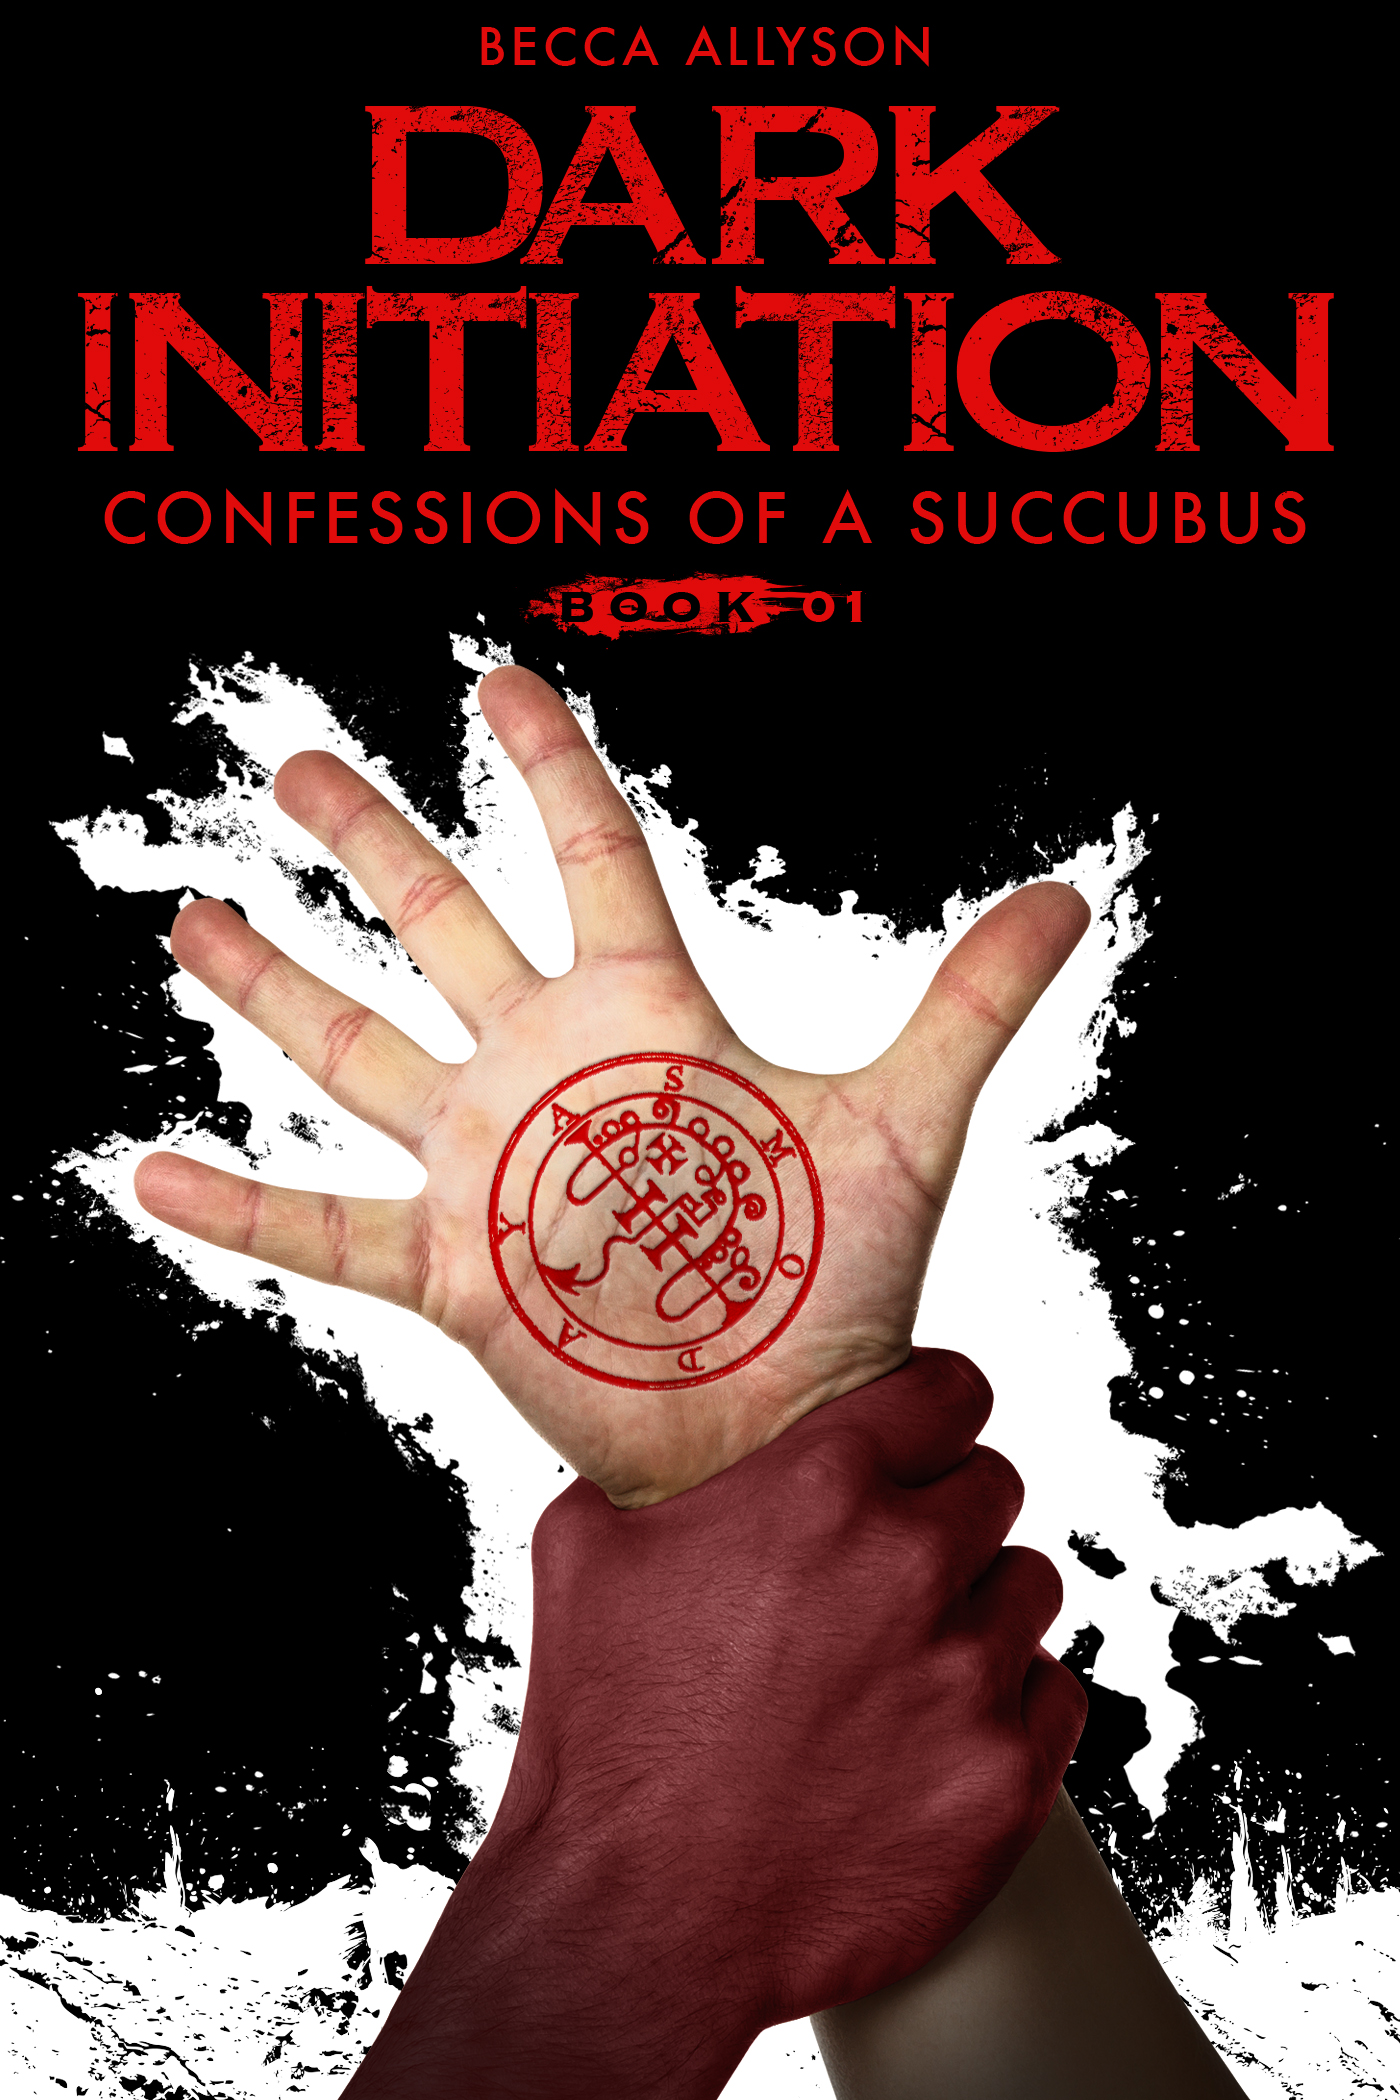 Dark Initiation: Confessions of a Succubus Book 1 (paranormal erotic romance)